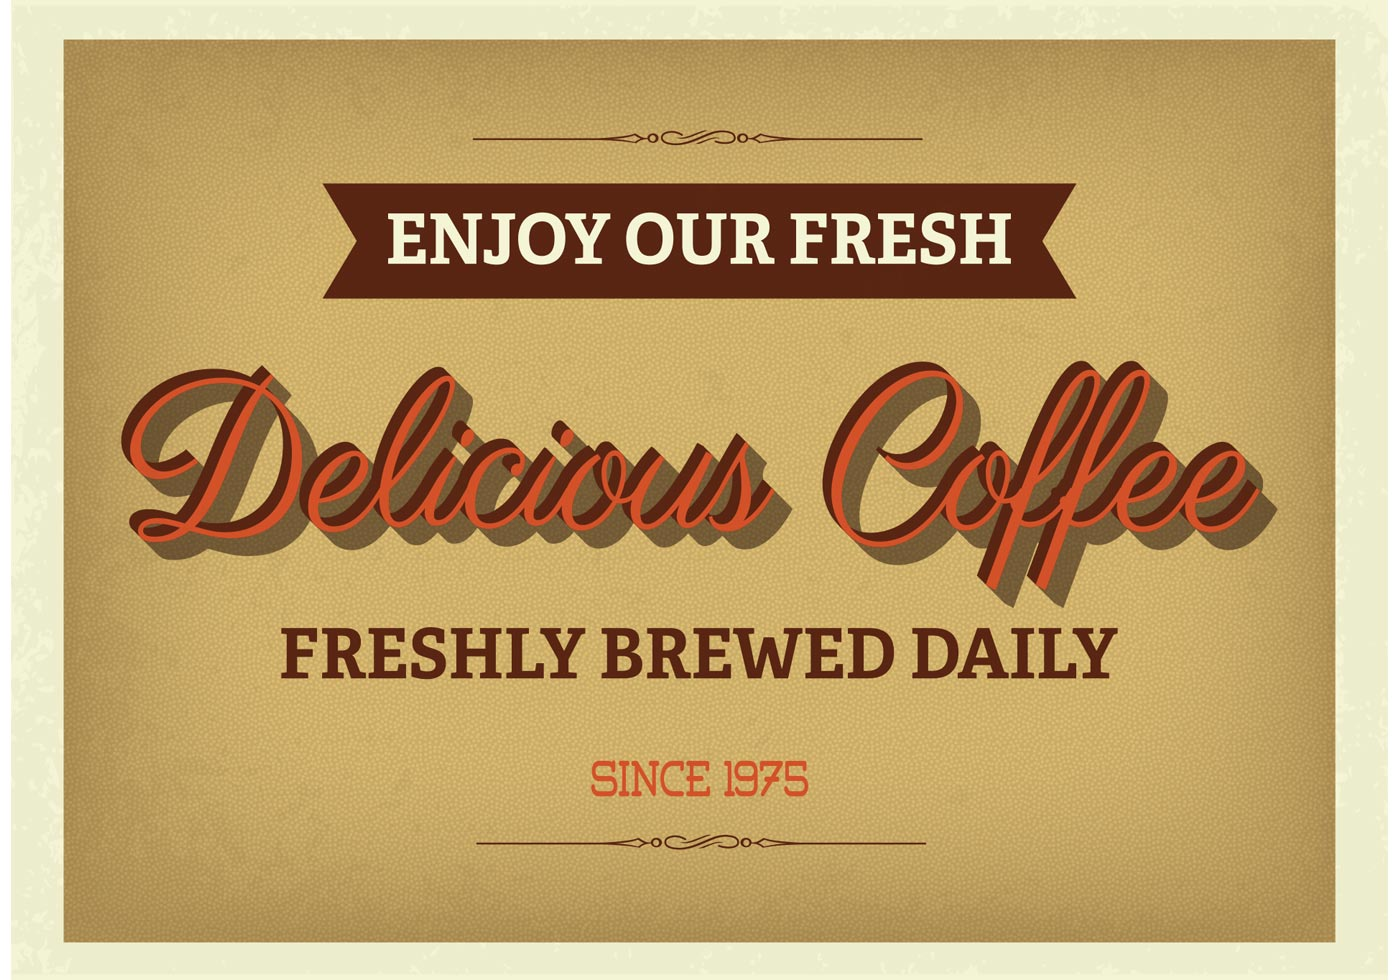 Kaffee Poster Vintage Typographic Coffee Poster Download Free Vector